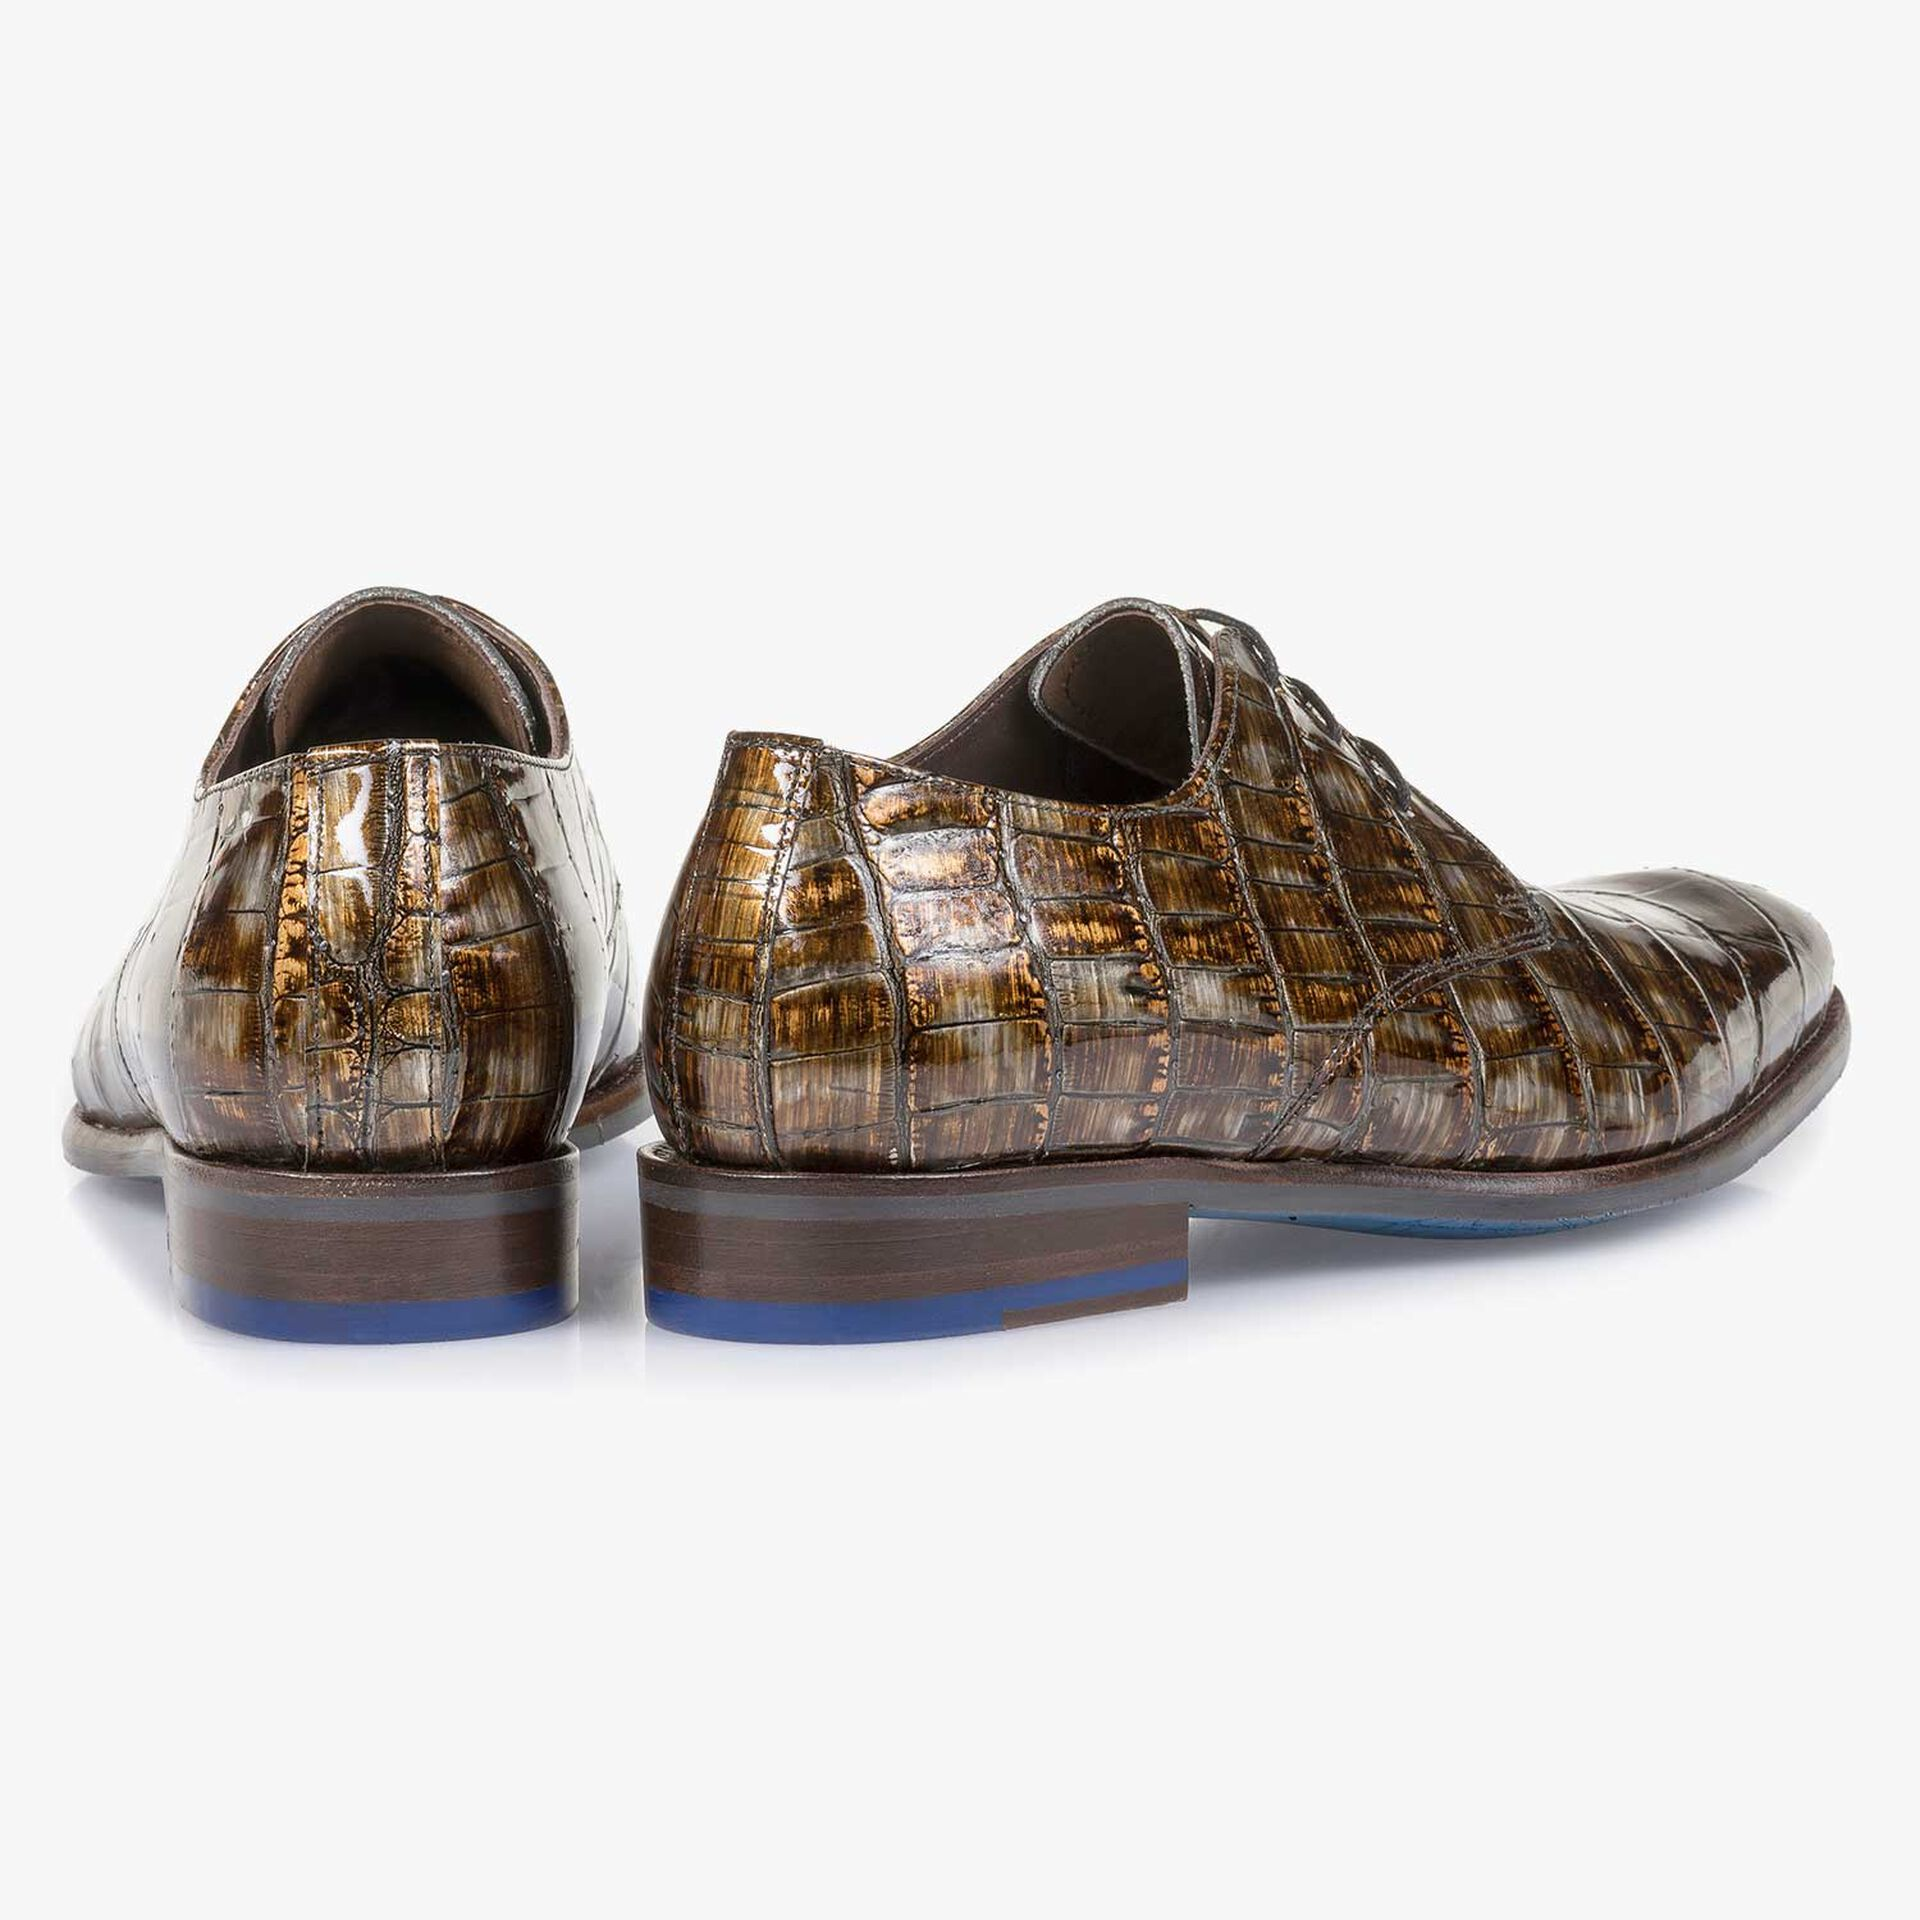 Cognac-coloured lace shoe with a croco print